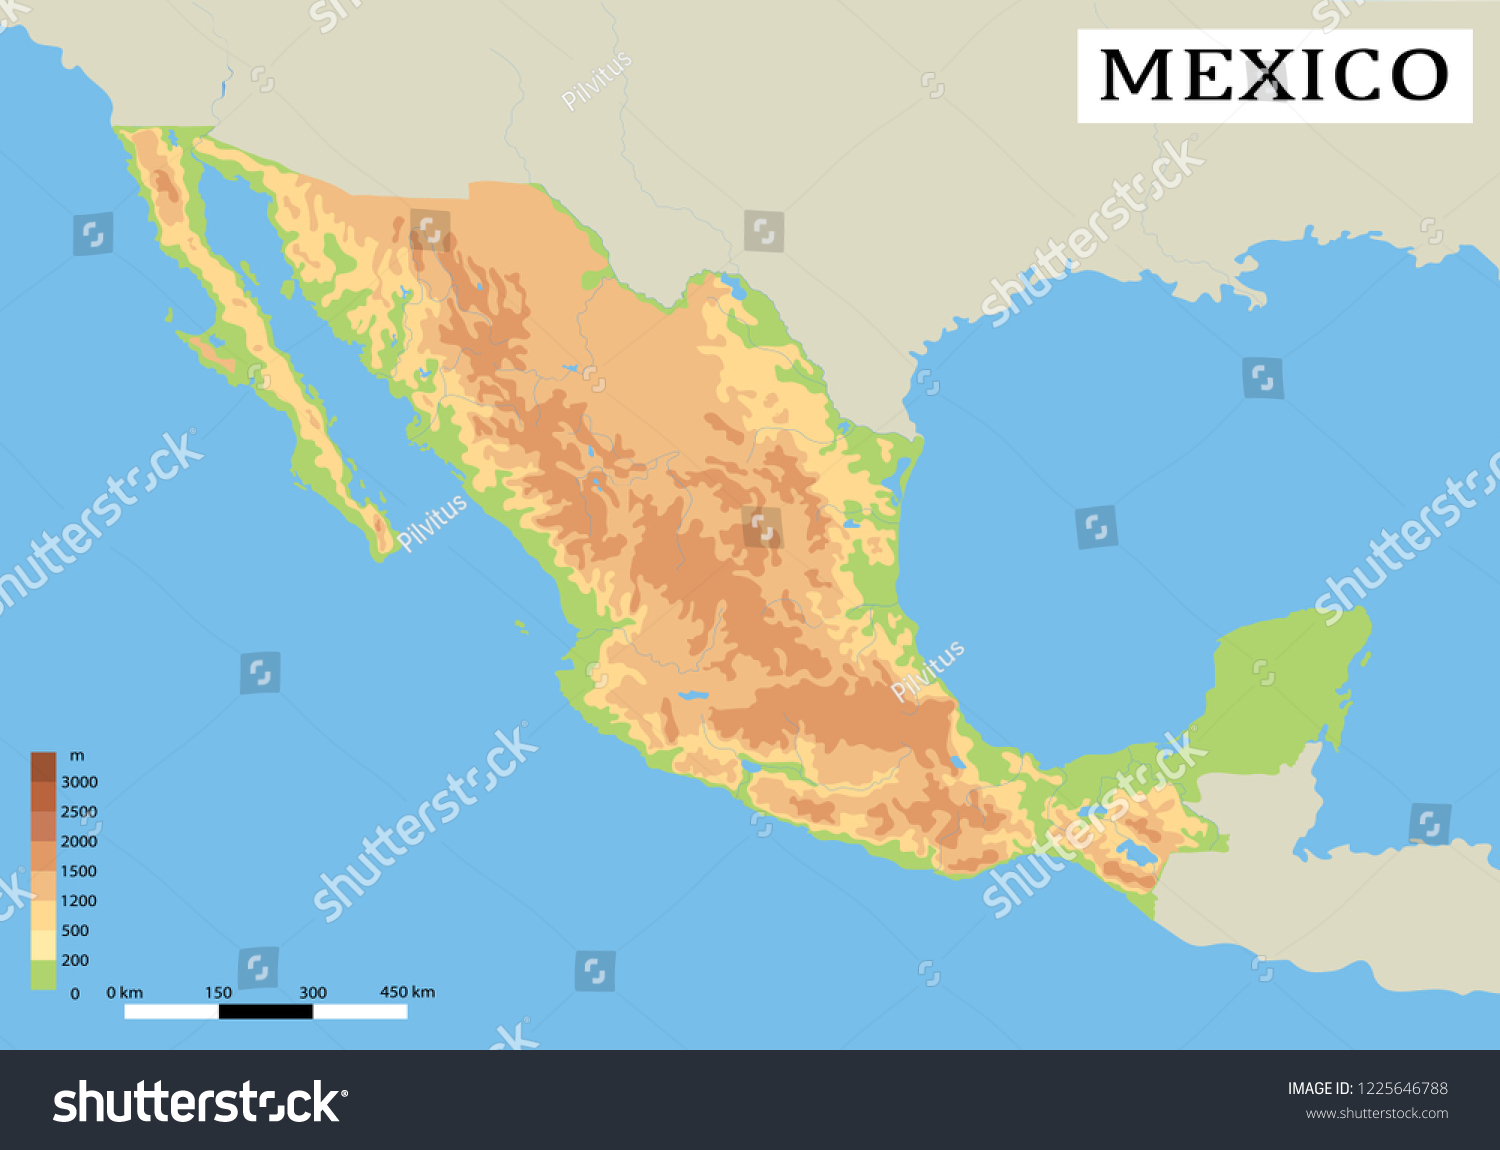 Mexico Detailed Physical Map Country Colored Stock Vector (Royalty ...